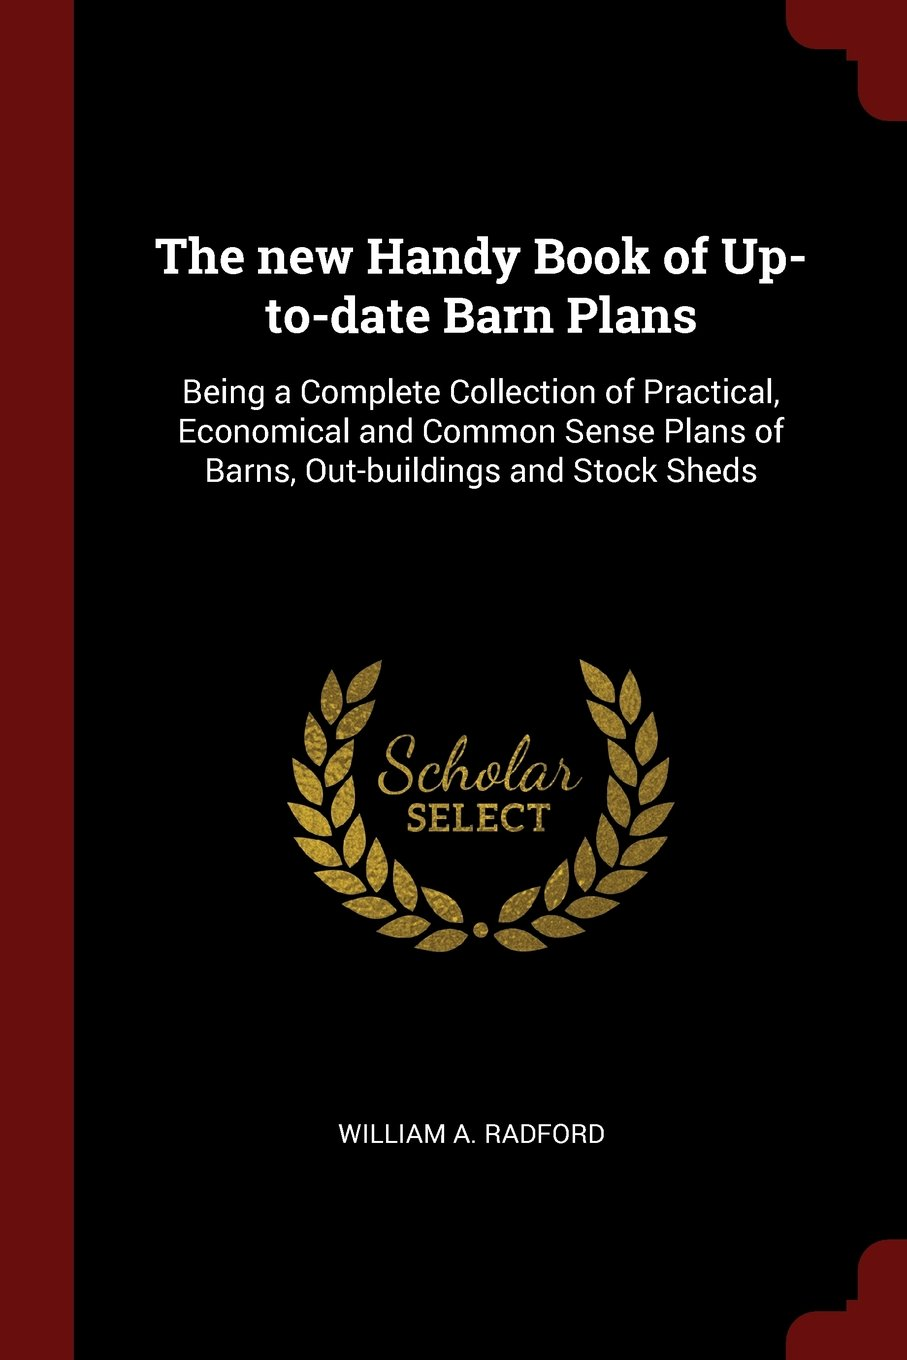 The new Handy Book of Up-to-date Barn Plans: Being a Complete Collection of Practical, Economical and Common Sense Plans of Barns, Out-buildings and Stock Sheds pdf epub